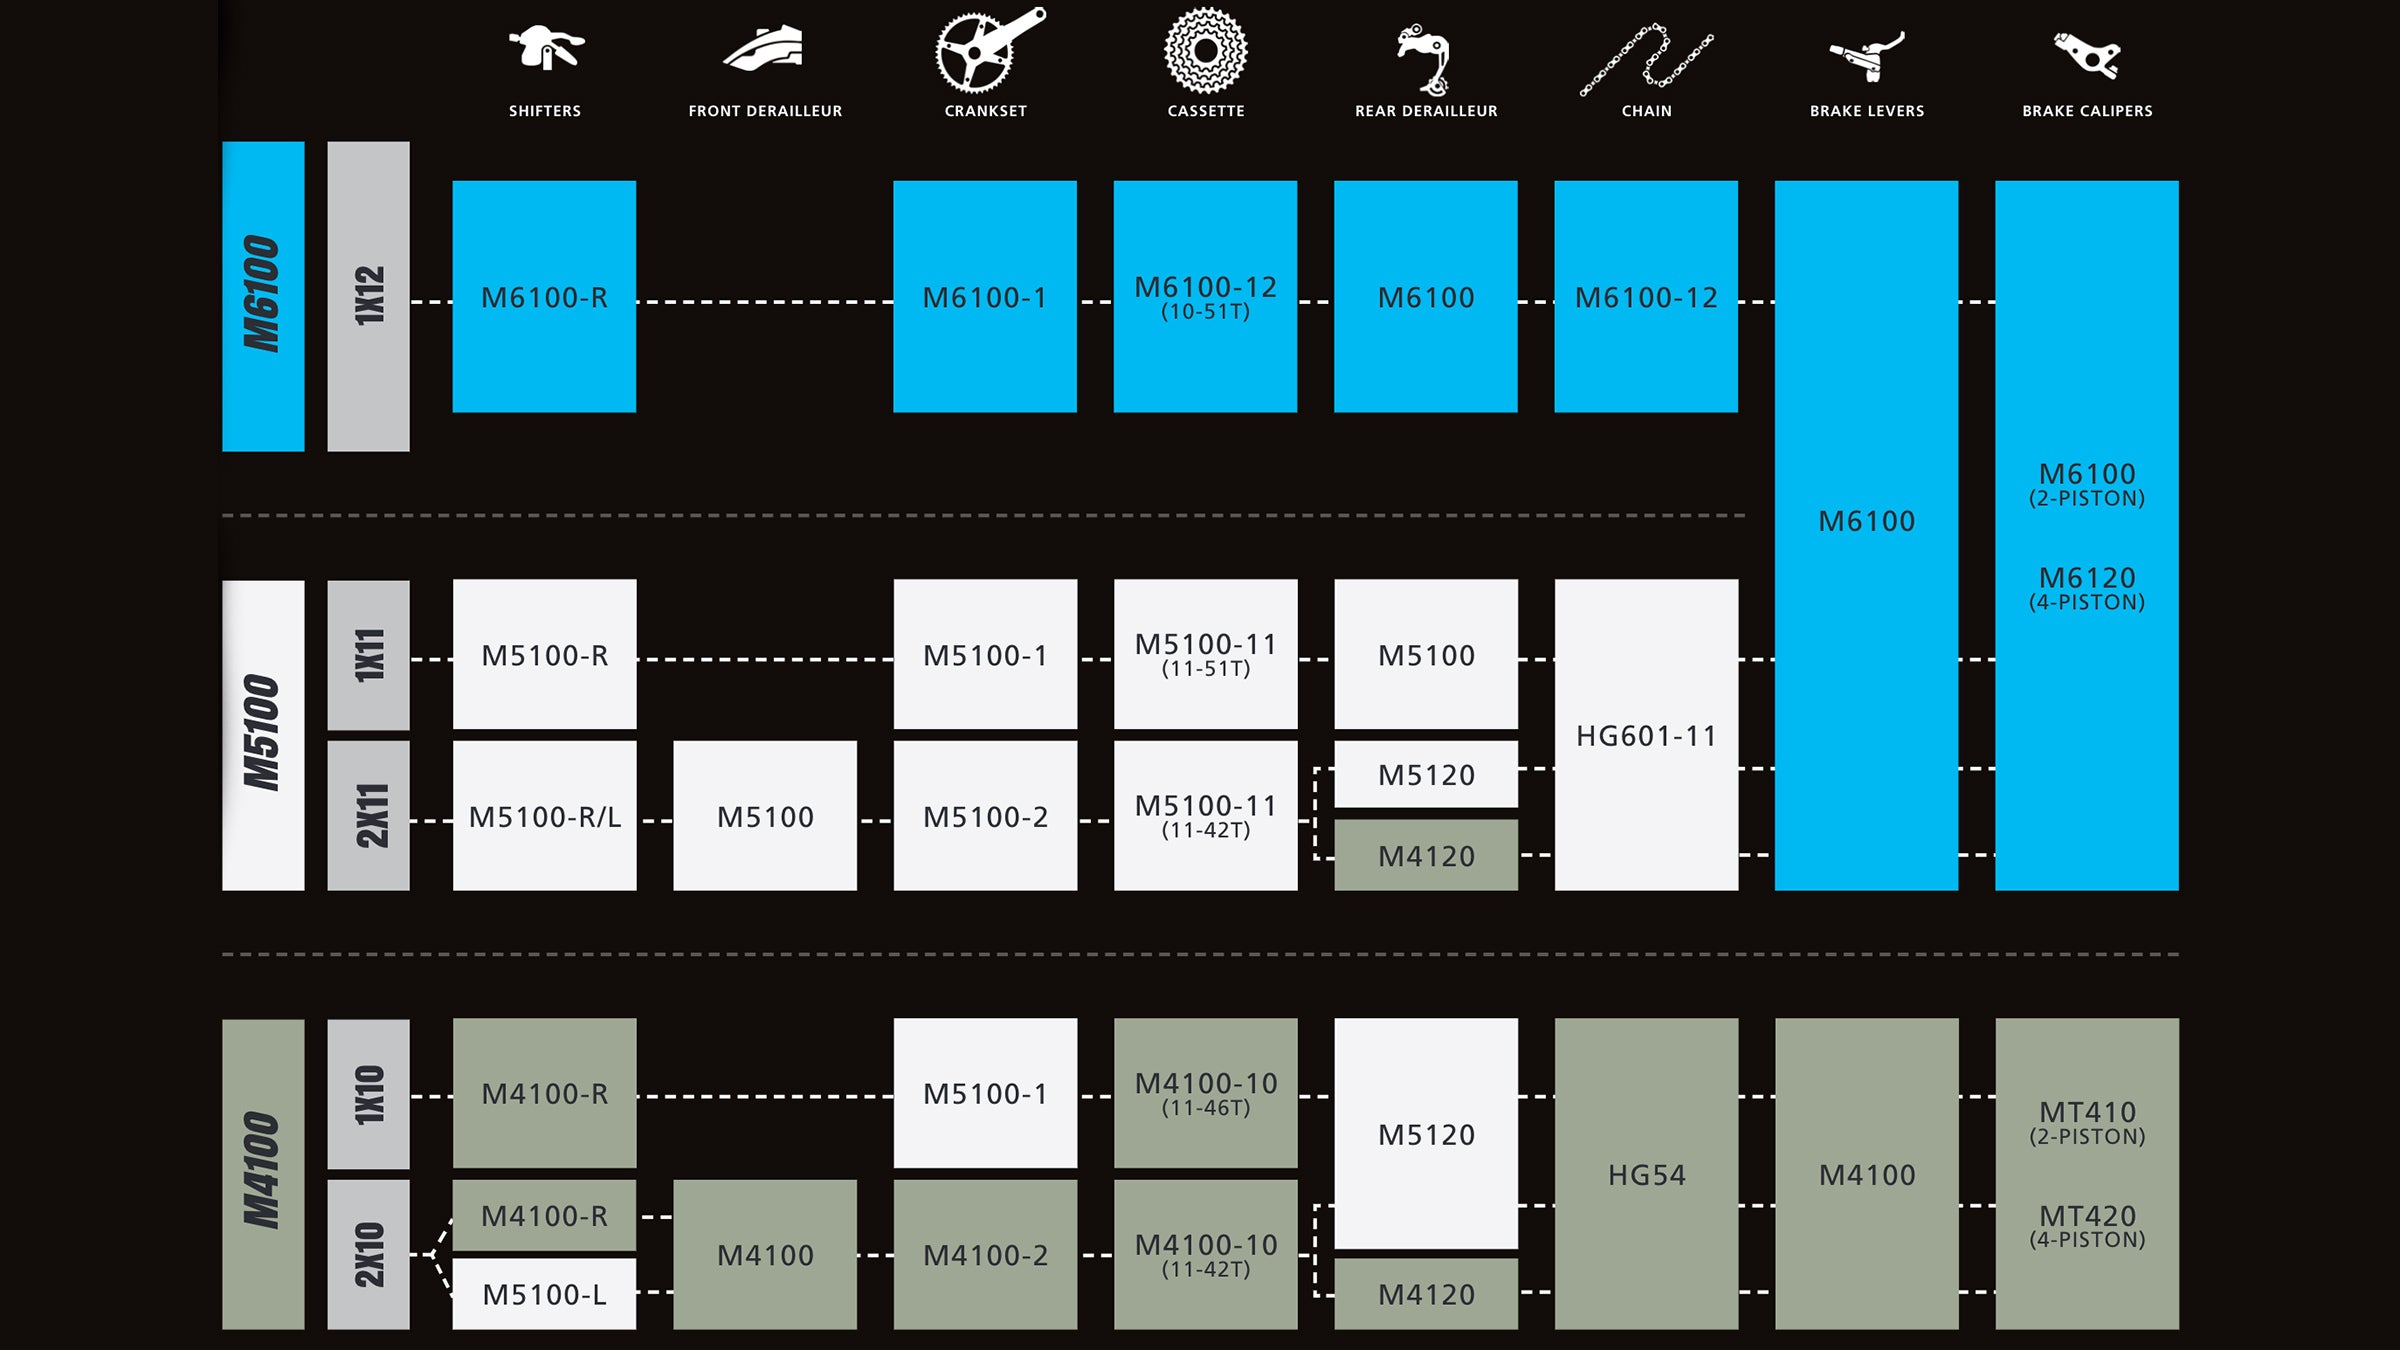 Shimano Deore M6100, M5100 and M4100 chart